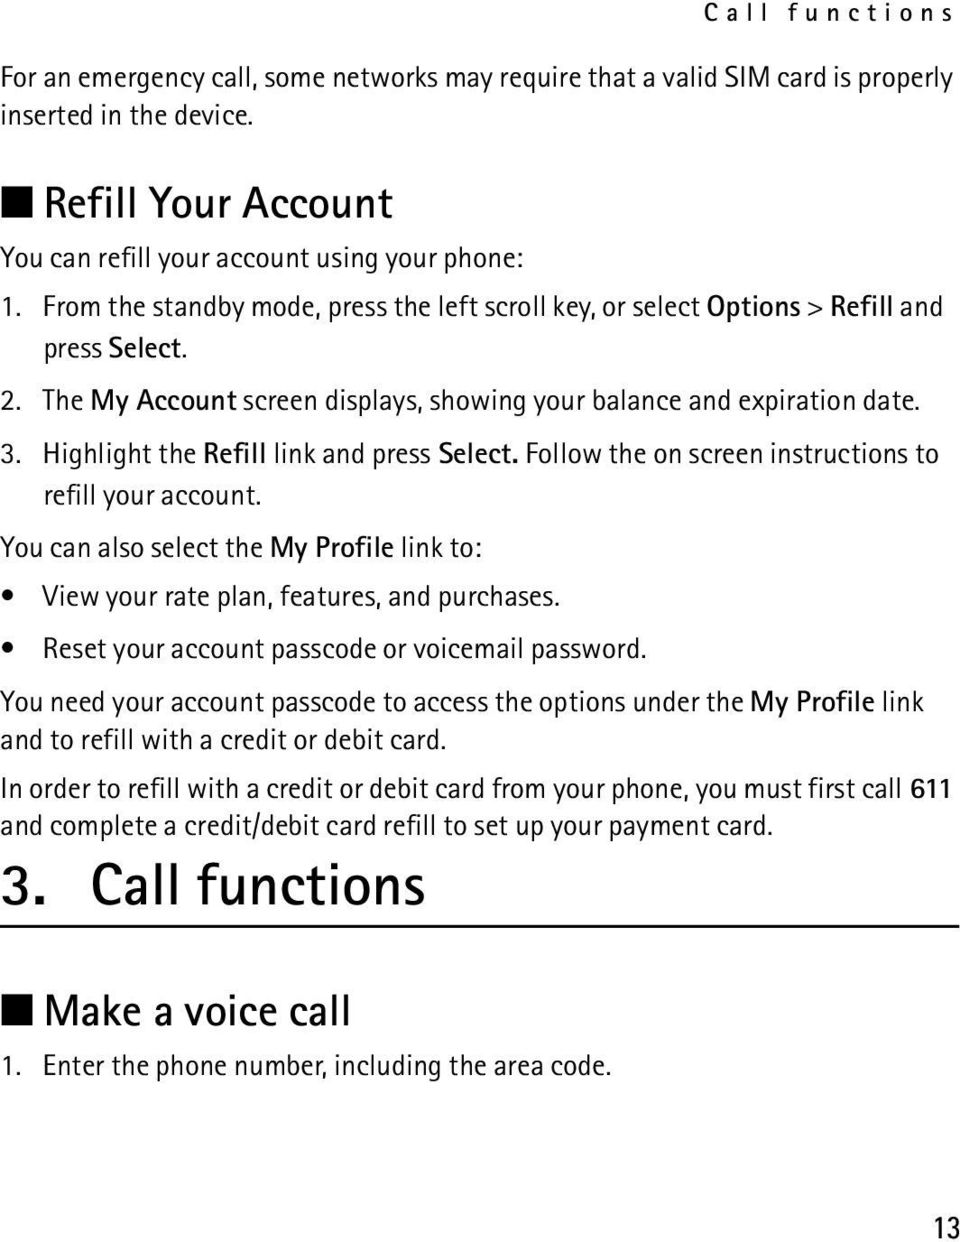 Highlight the Refill link and press Select. Follow the on screen instructions to refill your account. You can also select the My Profile link to: View your rate plan, features, and purchases.